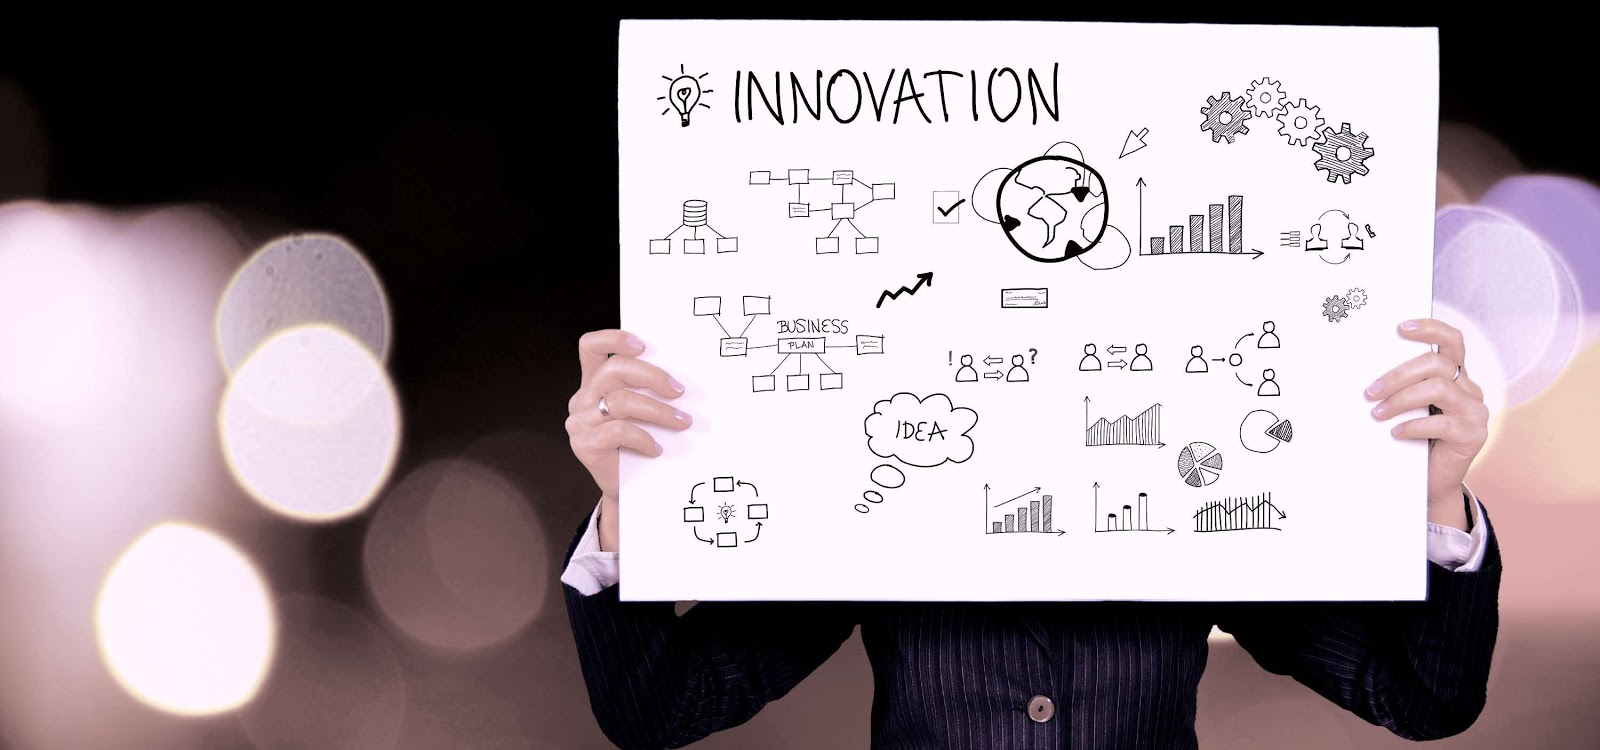 a person holding up a drawing board that says innovation with various drawings on it